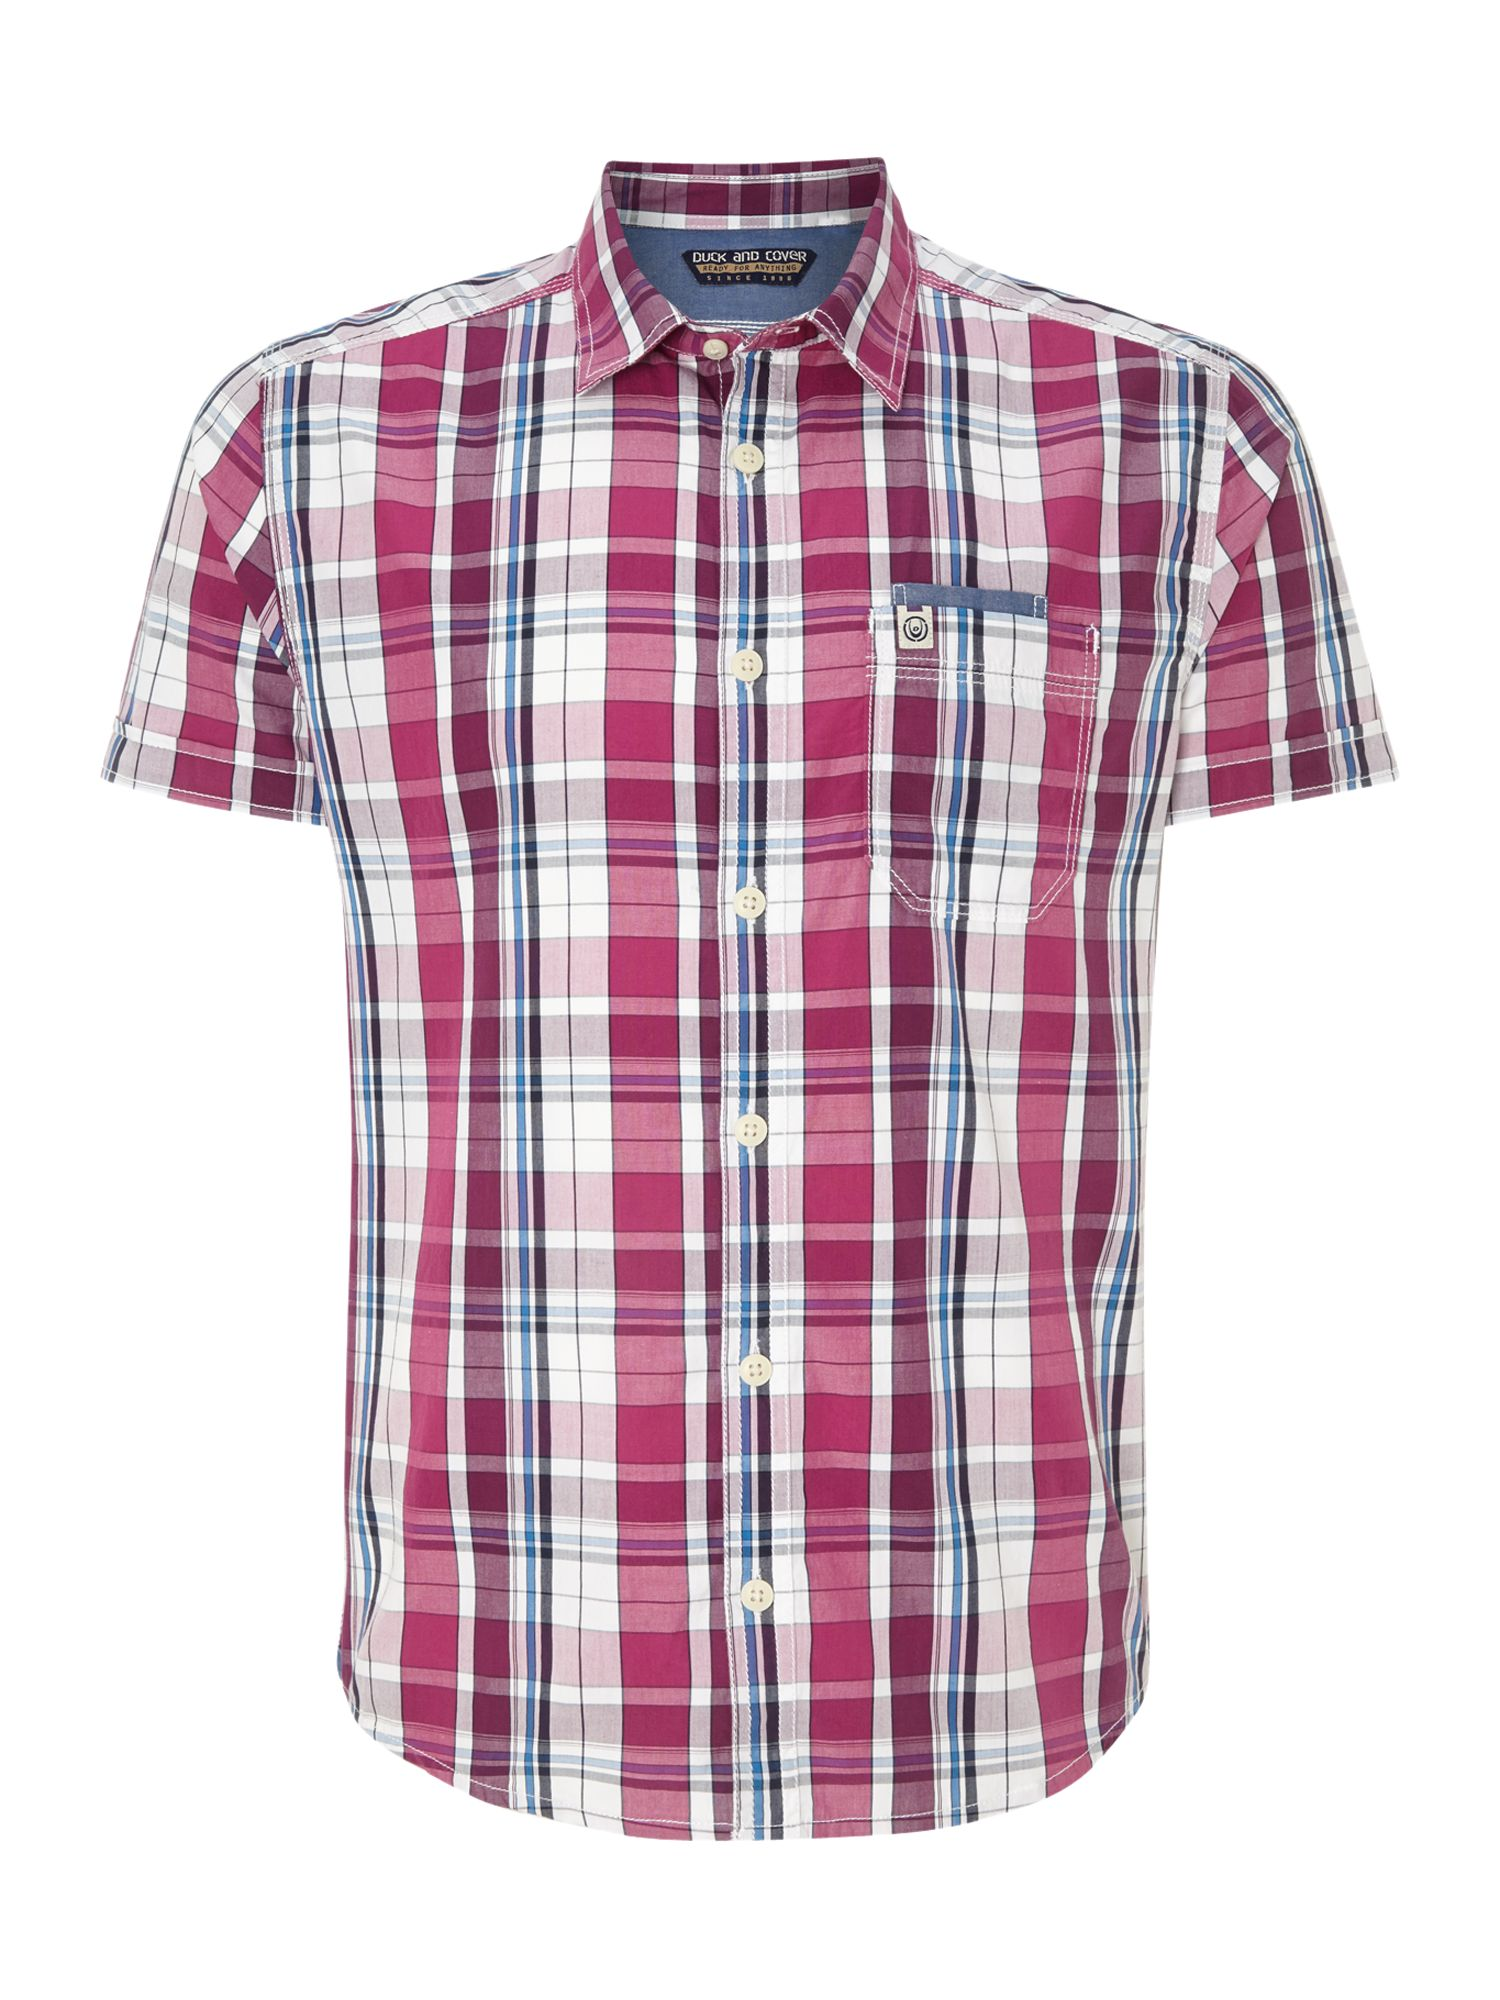 Axel short sleeve casual shirt